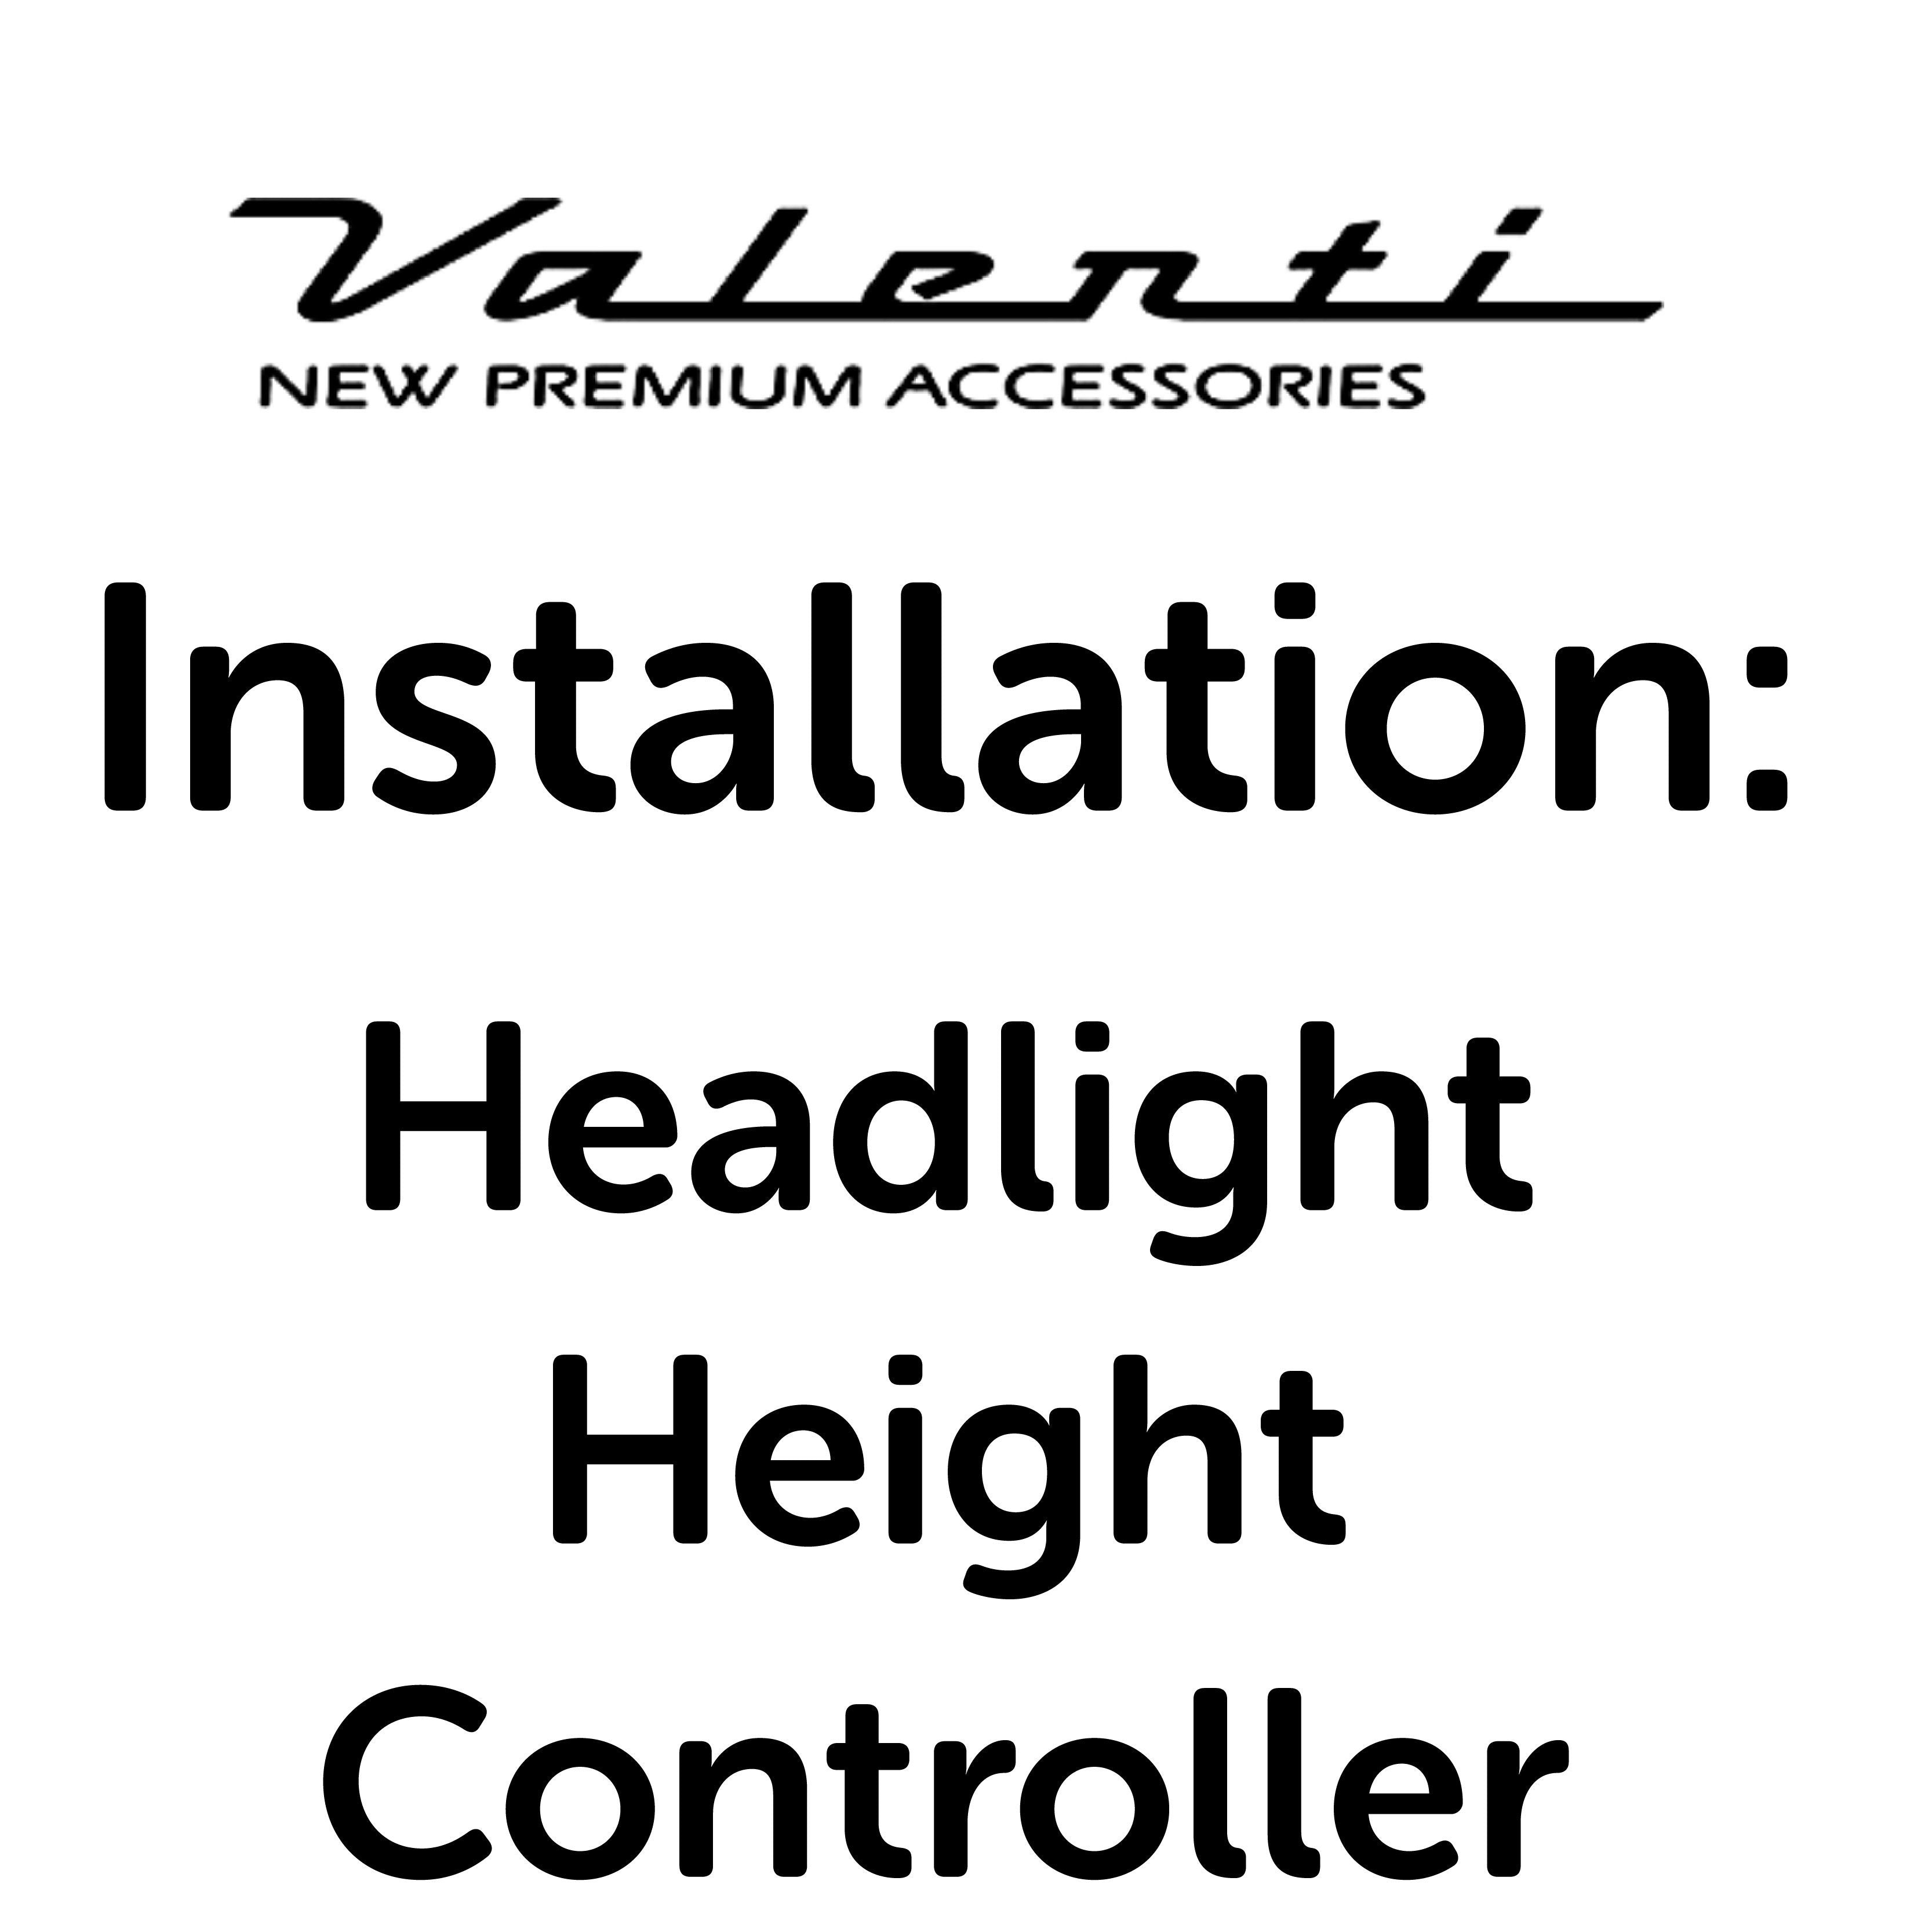 Installation VA - Headlight Height Controller